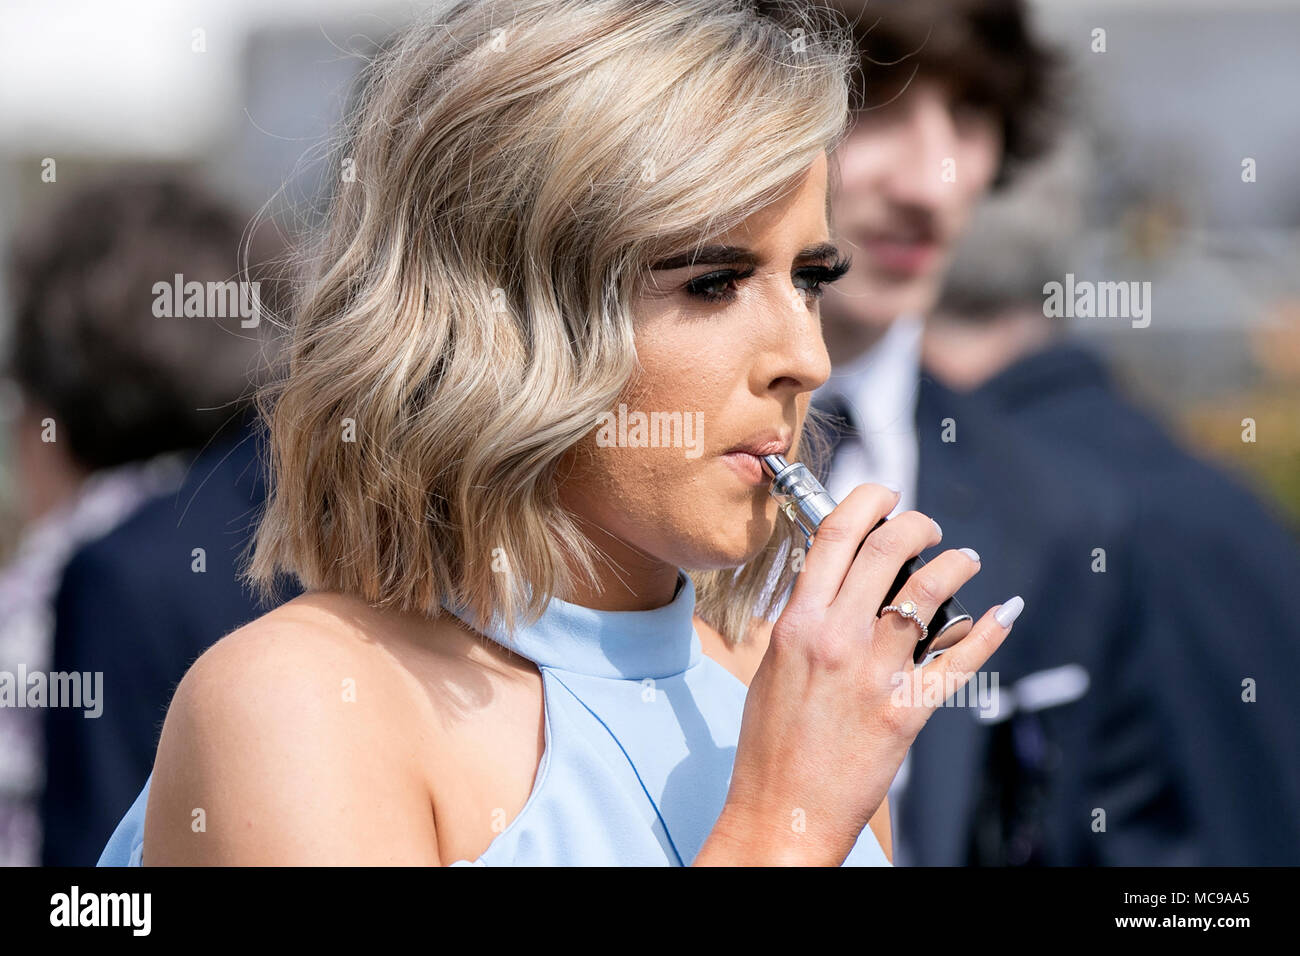 a young woman vaping on an e-cigarette vape device smoking substitute - Stock Image